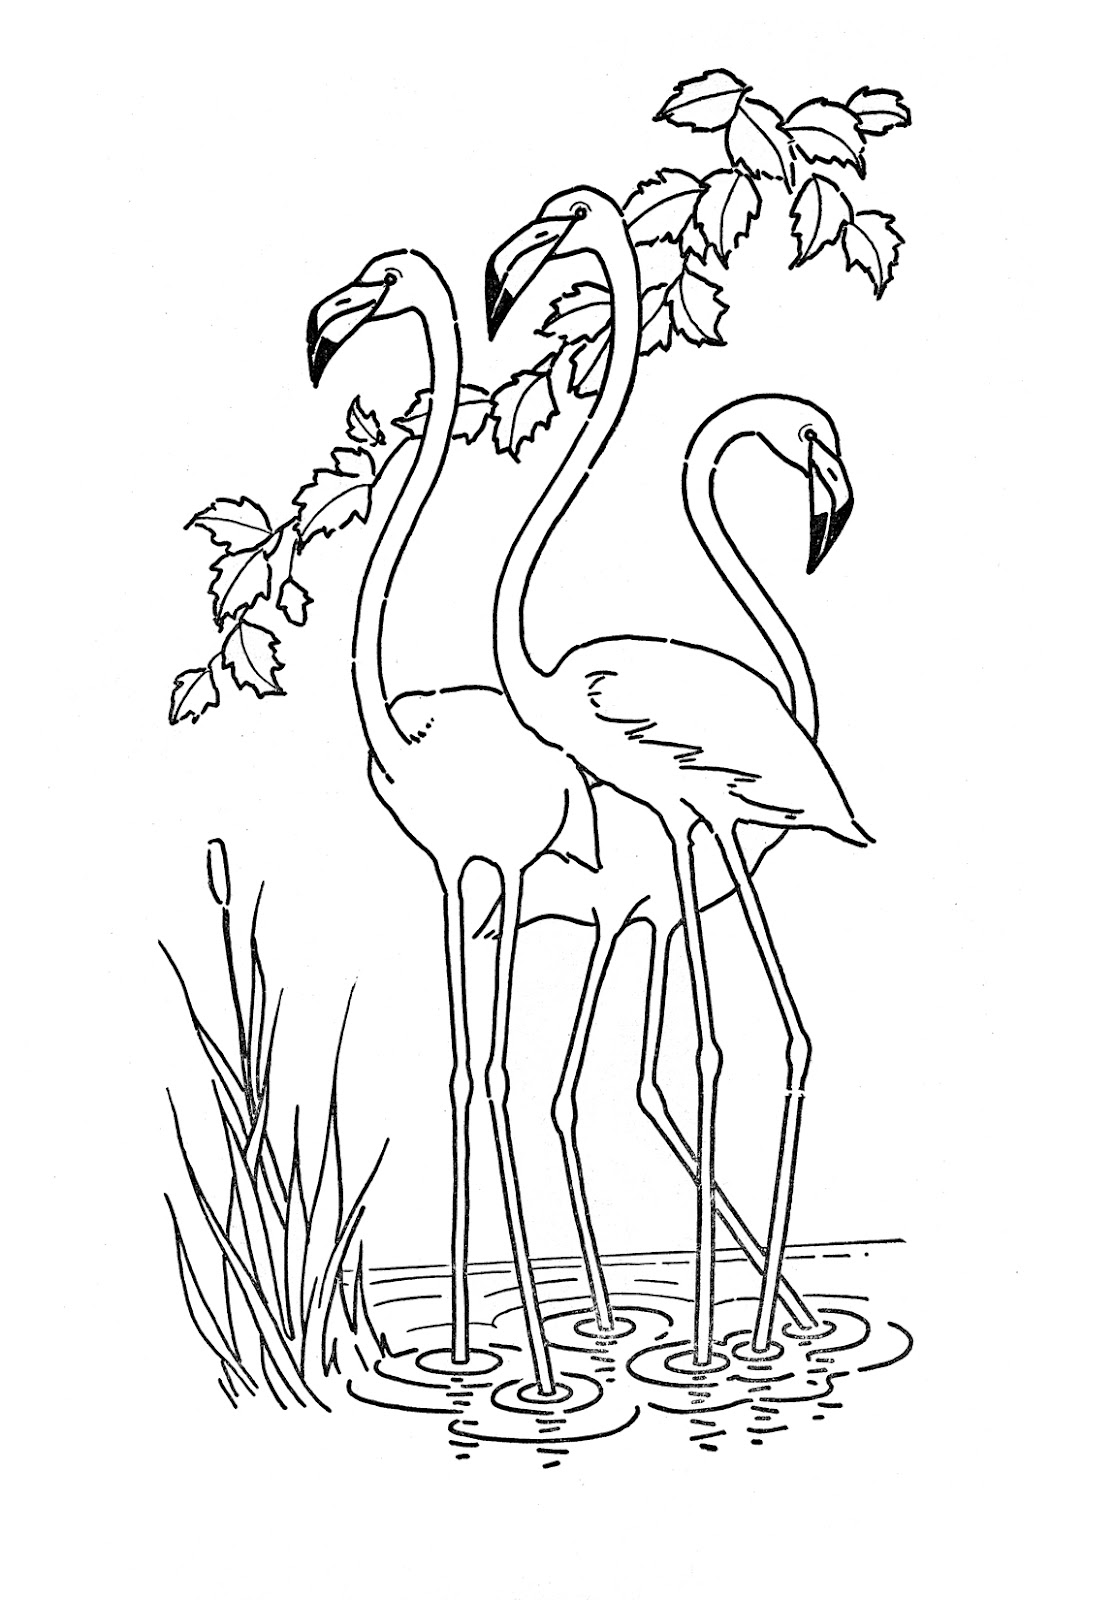 coloring kids clipart bing clipart coloring page bing coloring page transparent kids clipart coloring